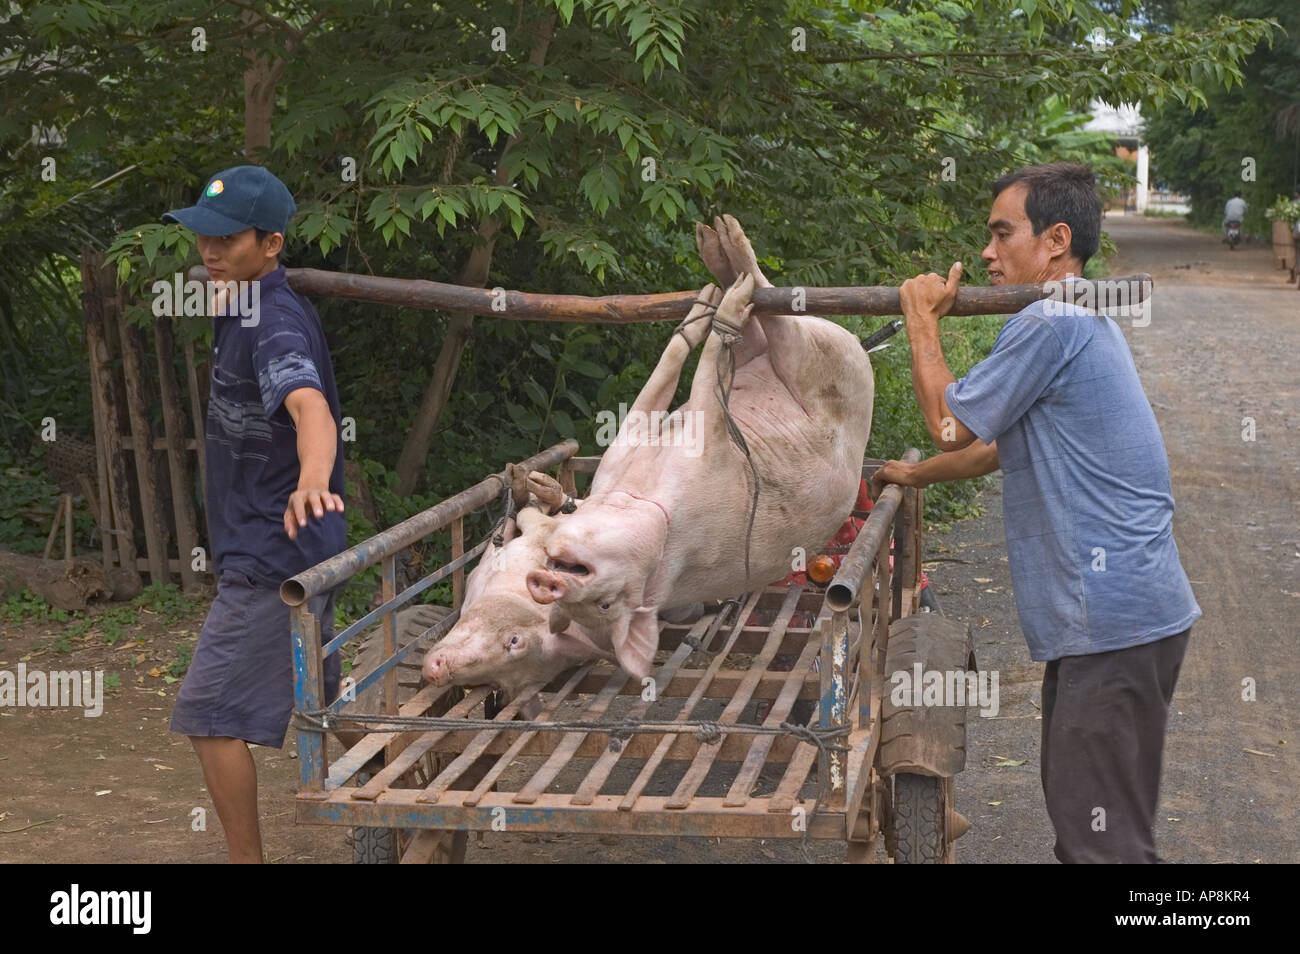 Cambodia Mekong River Peam Chikang Men Carrying Pig To Slaughter